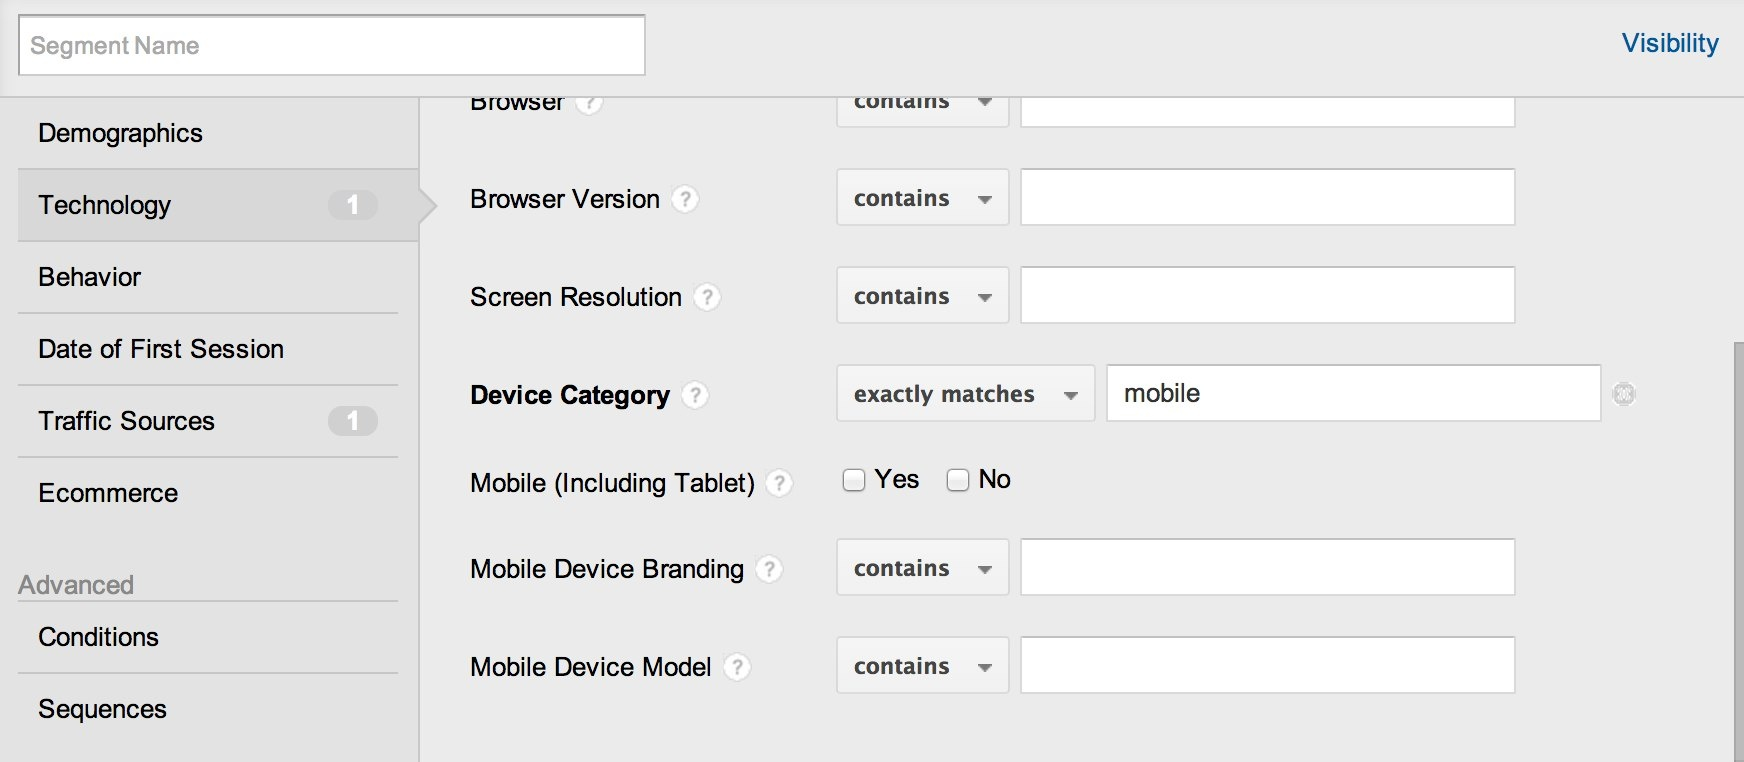 create segment with device category equals mobile